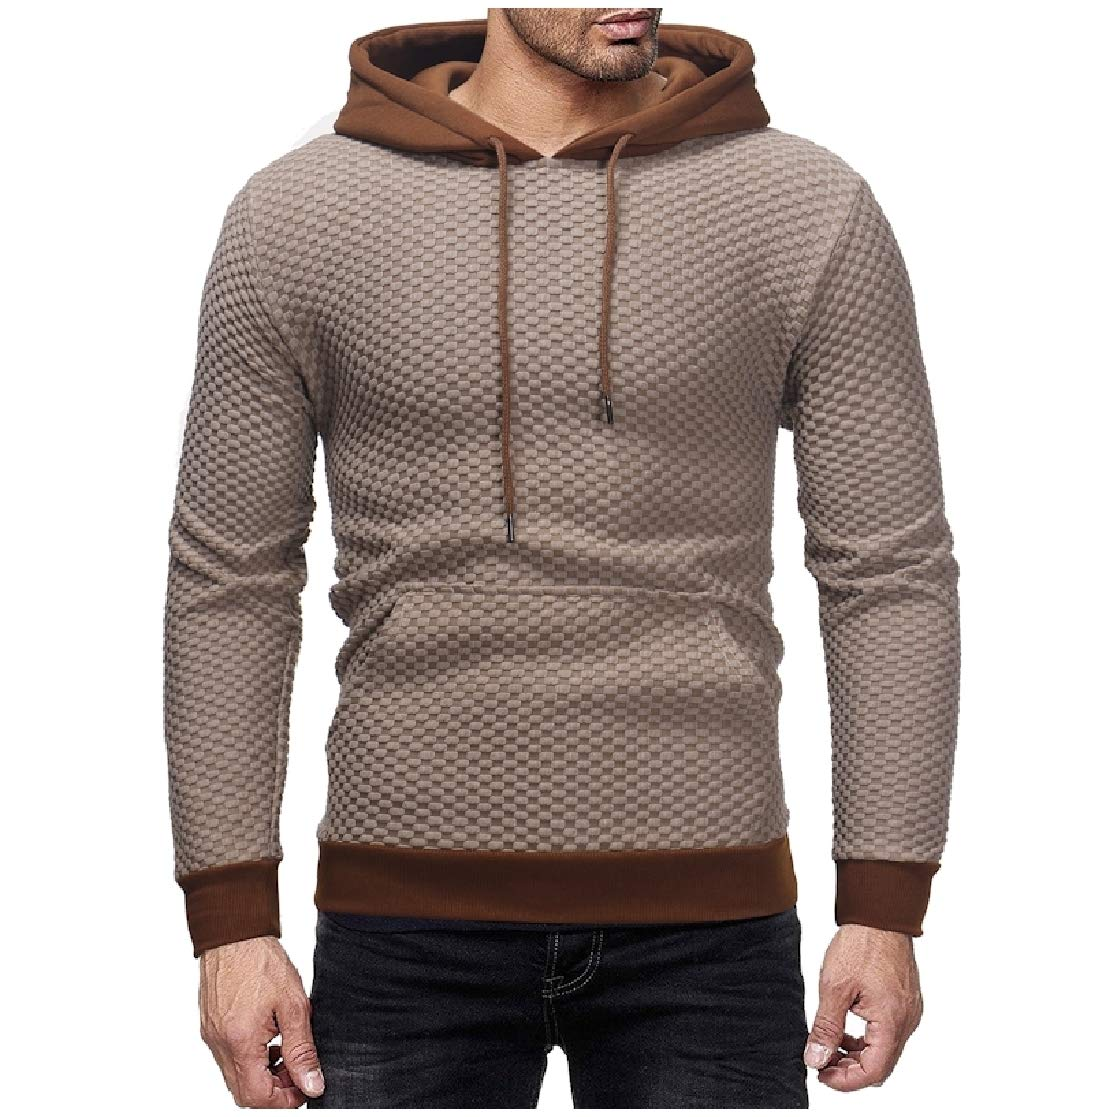 YUNY Mens Plaid Long Sleeve Hooded Cargo Pocket Drawstring Pullover Tracksuit Top Off-White XL